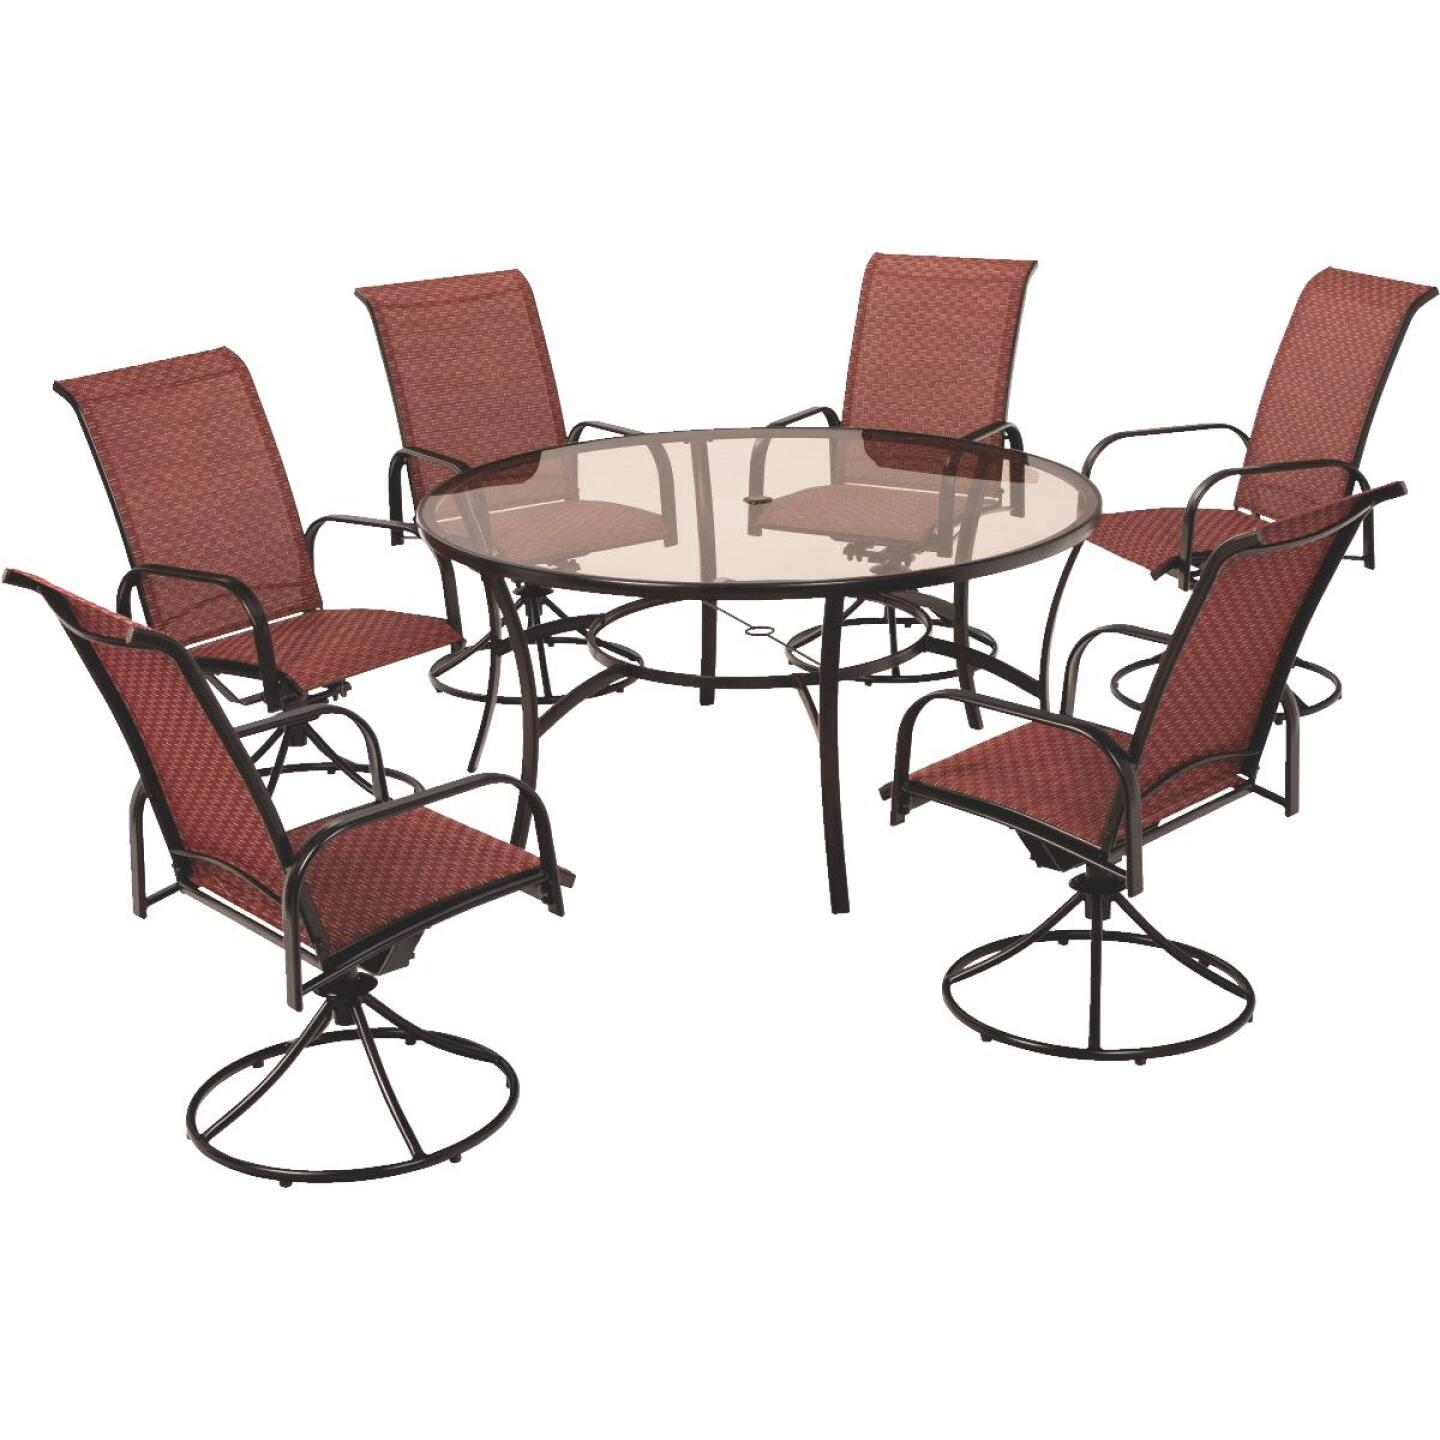 Outdoor Expressions Monaco 7-Piece Dining Set Image 1